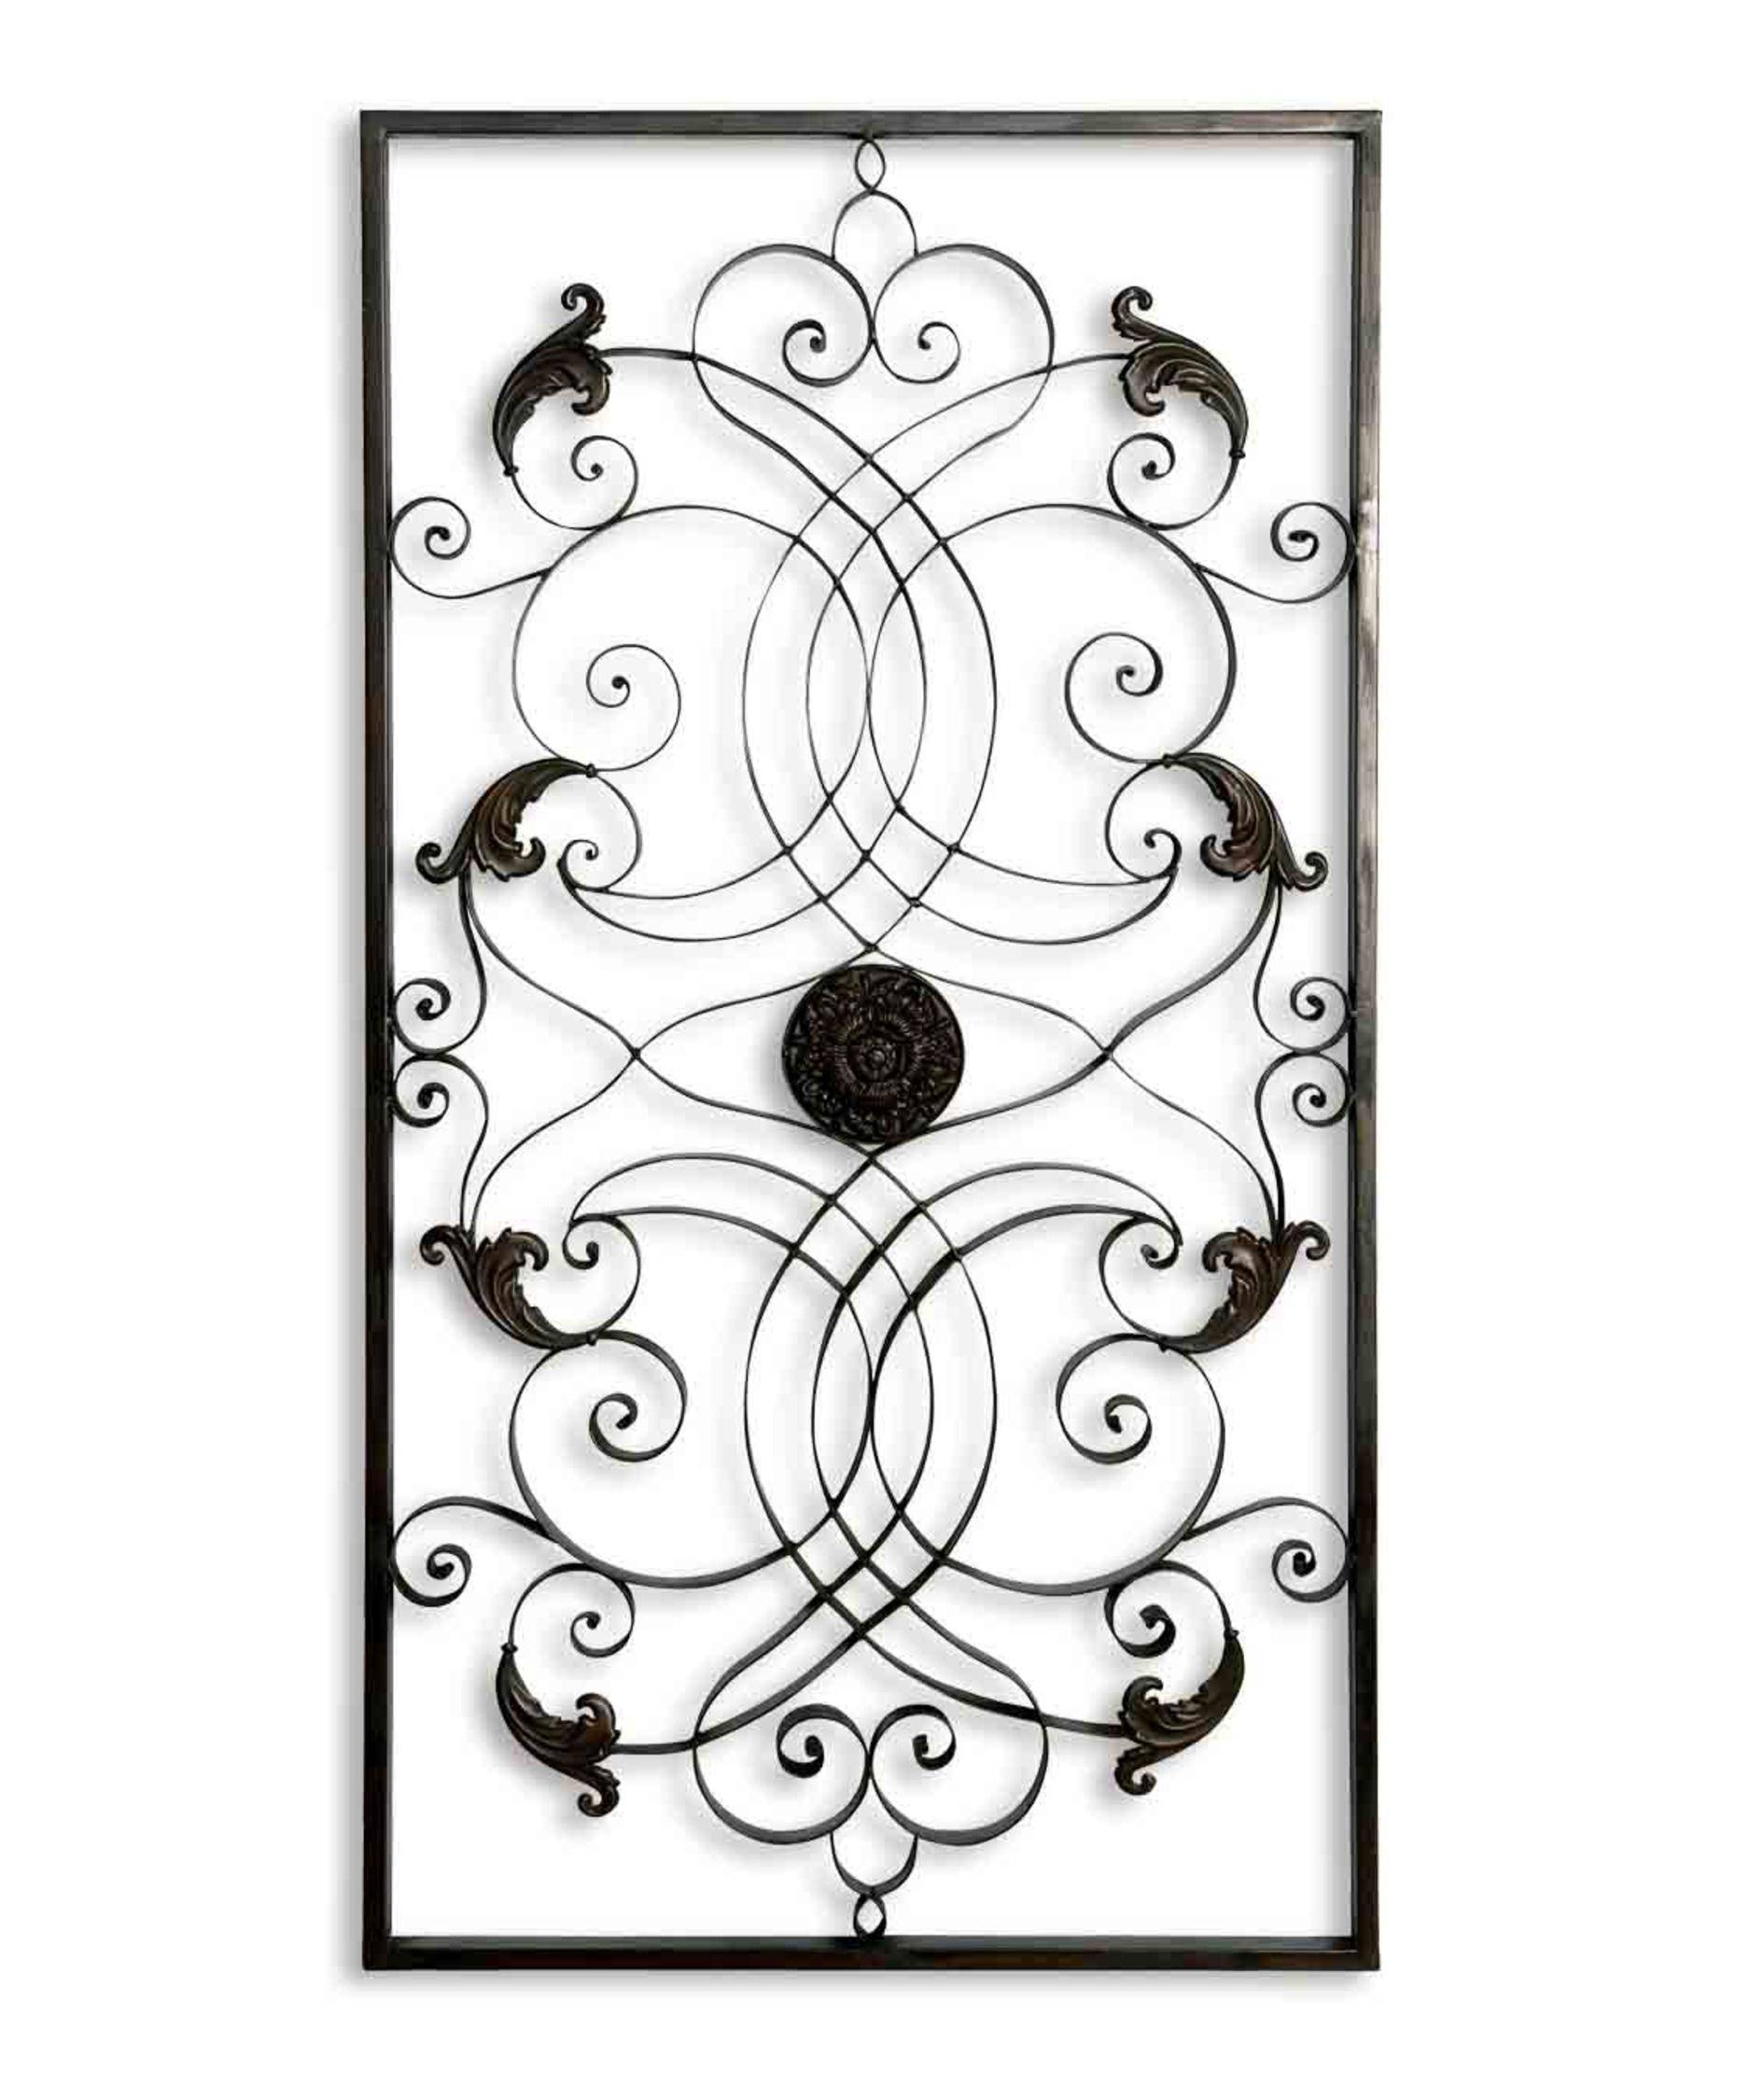 Uttermost 07527 Effie Alternative Wall Art | Capitol Lighting 1 Intended For Most Popular Uttermost Metal Wall Art (View 6 of 20)